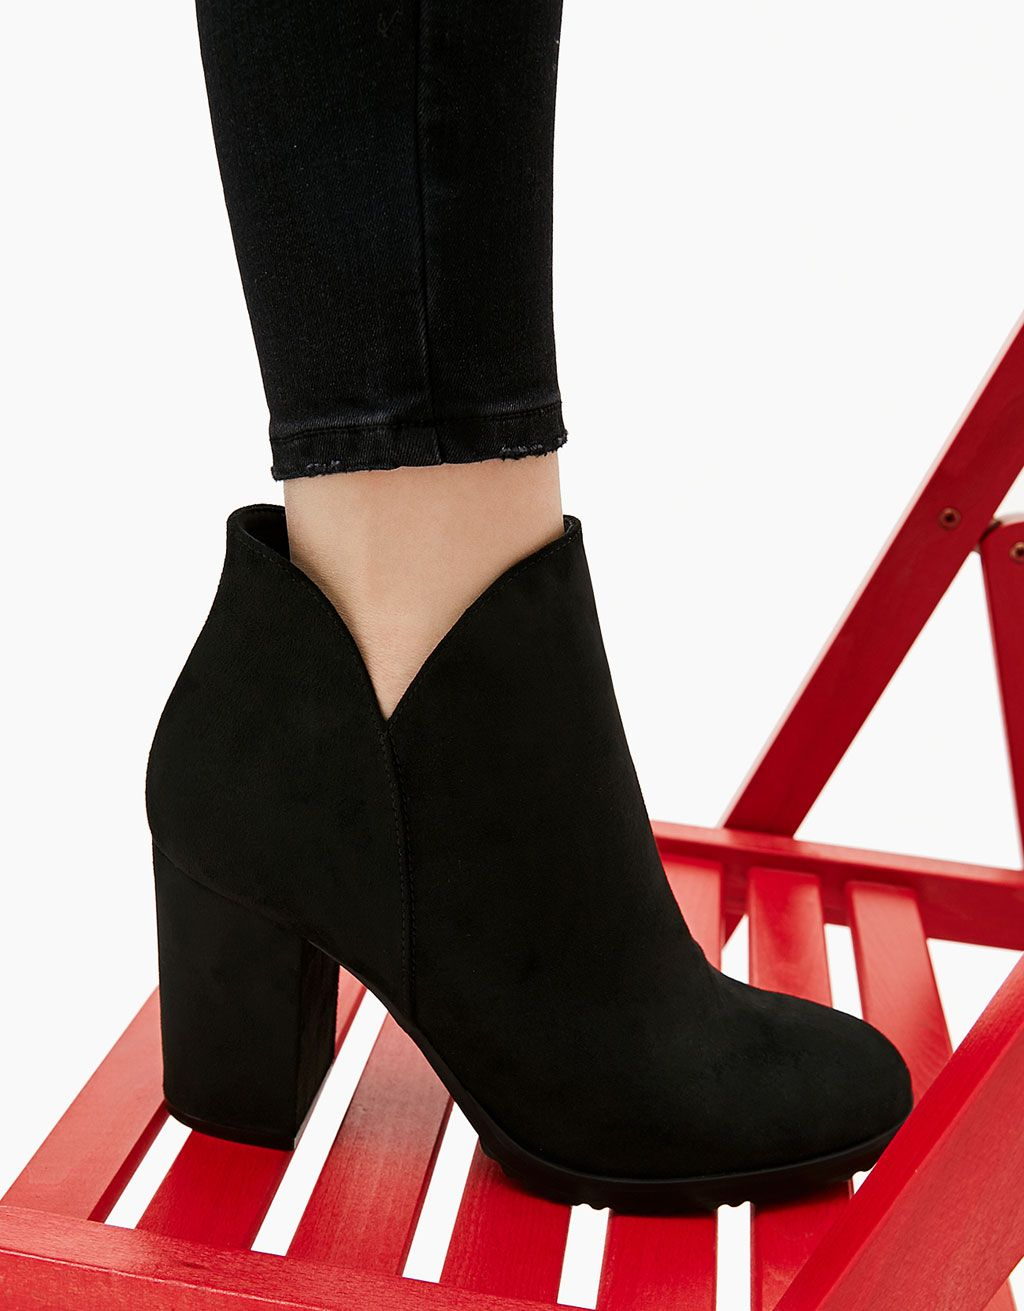 adcf591d28d7 ankle boots with block mid-heel. Discover this and many more items in  Bershka